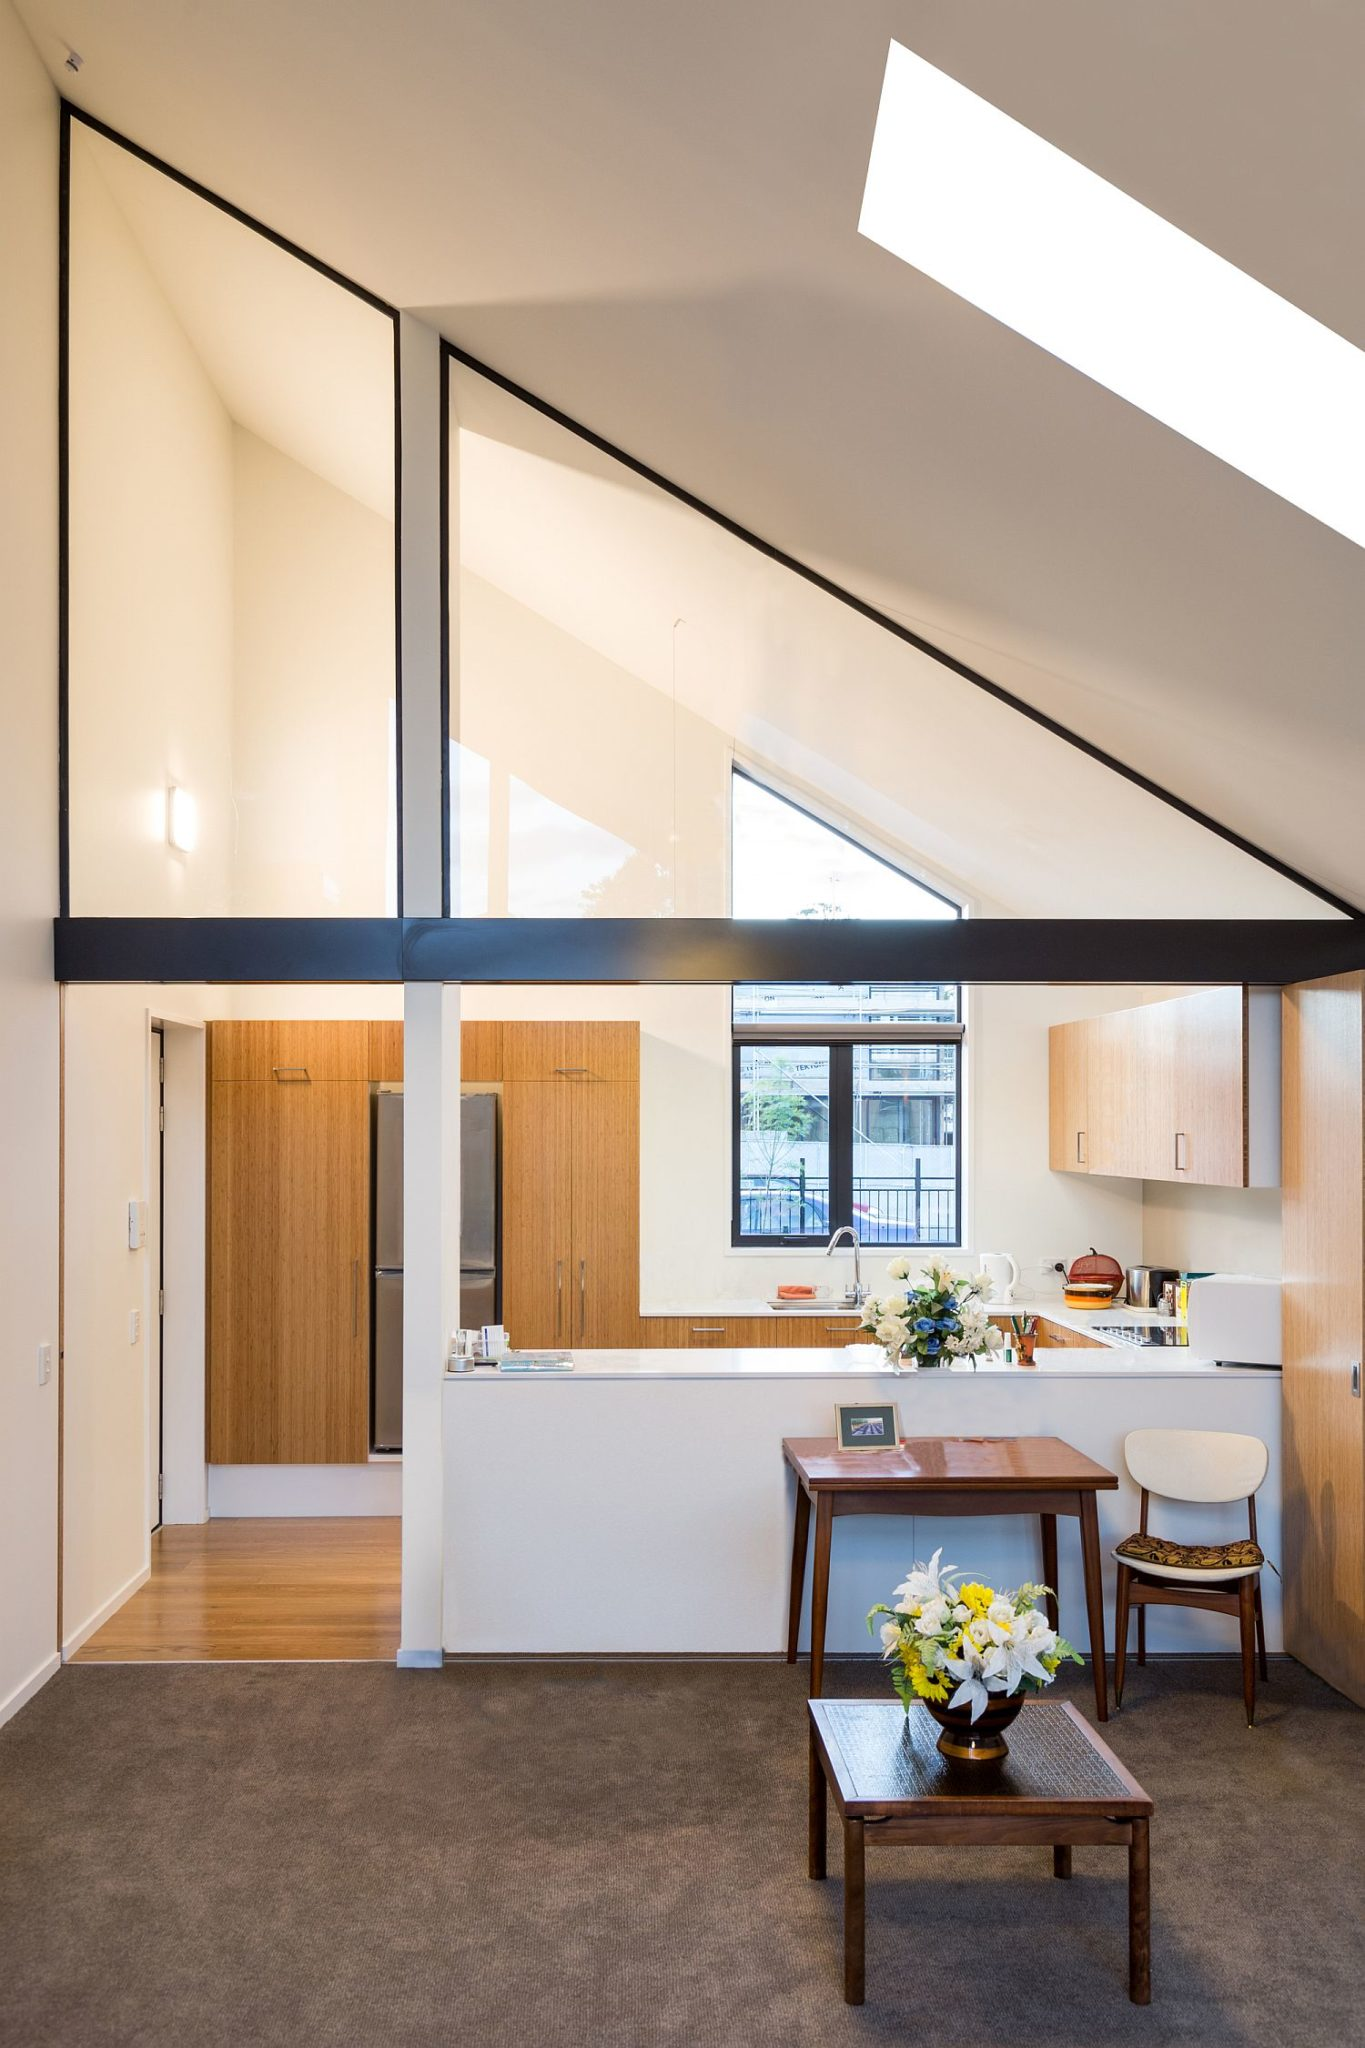 Slanted roof and skylights shape a unique interior